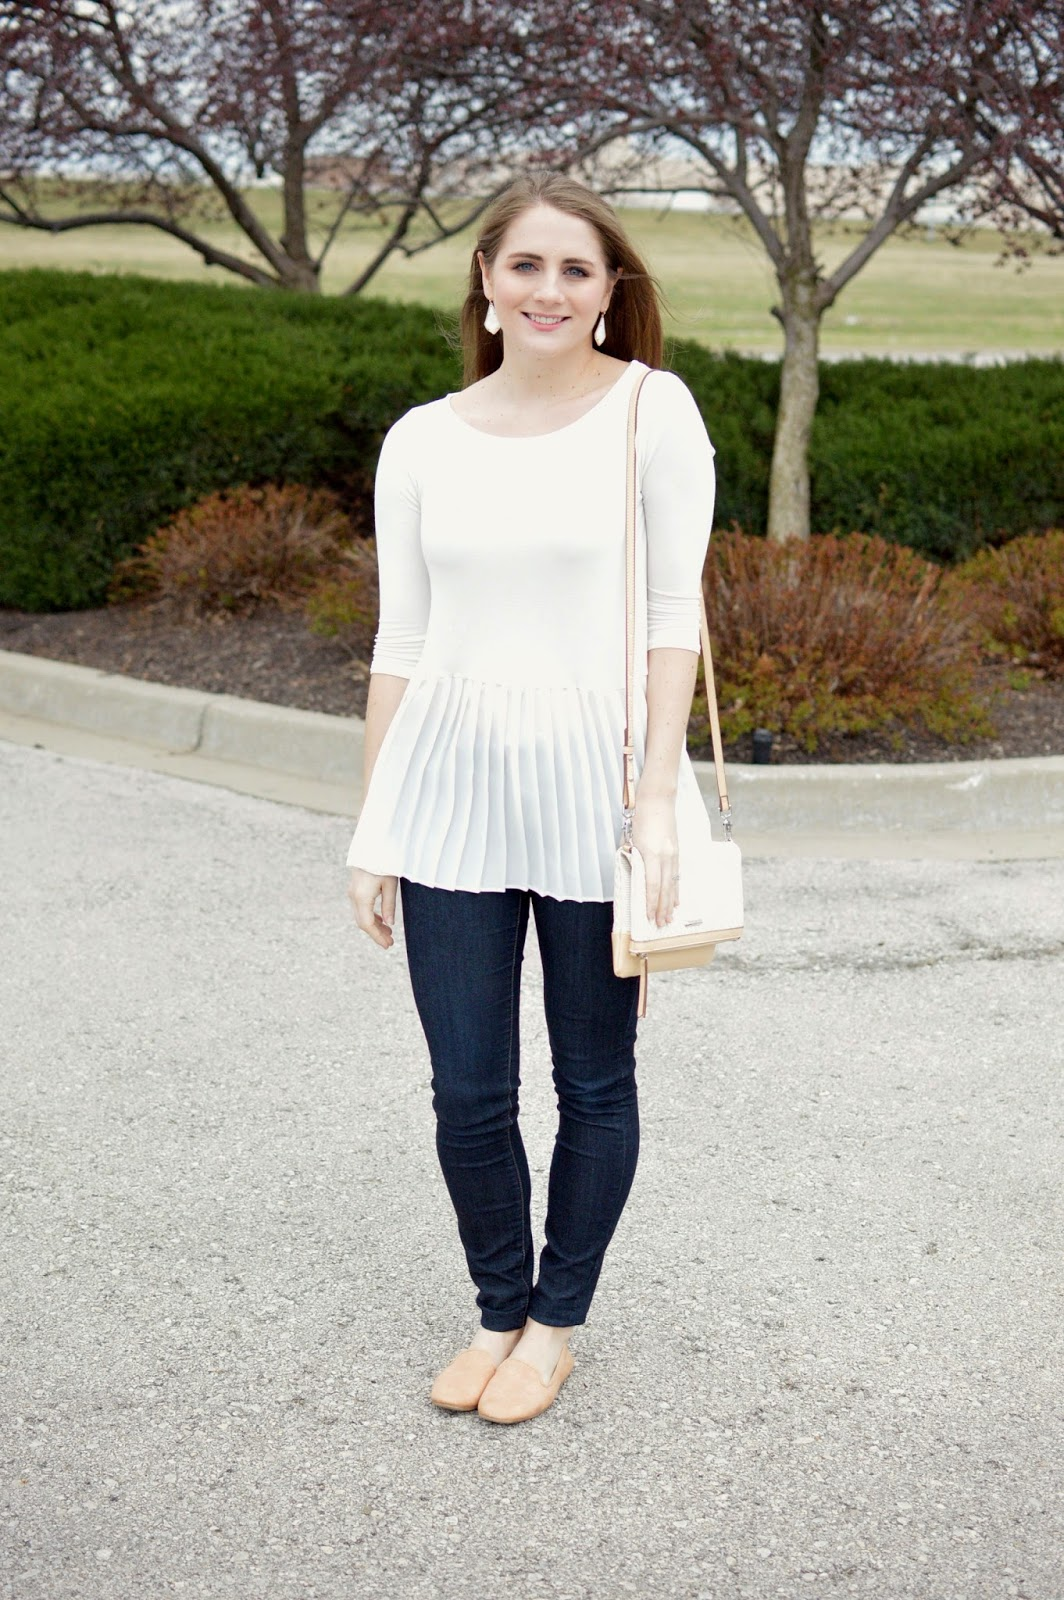 white top with nude loafers for spring